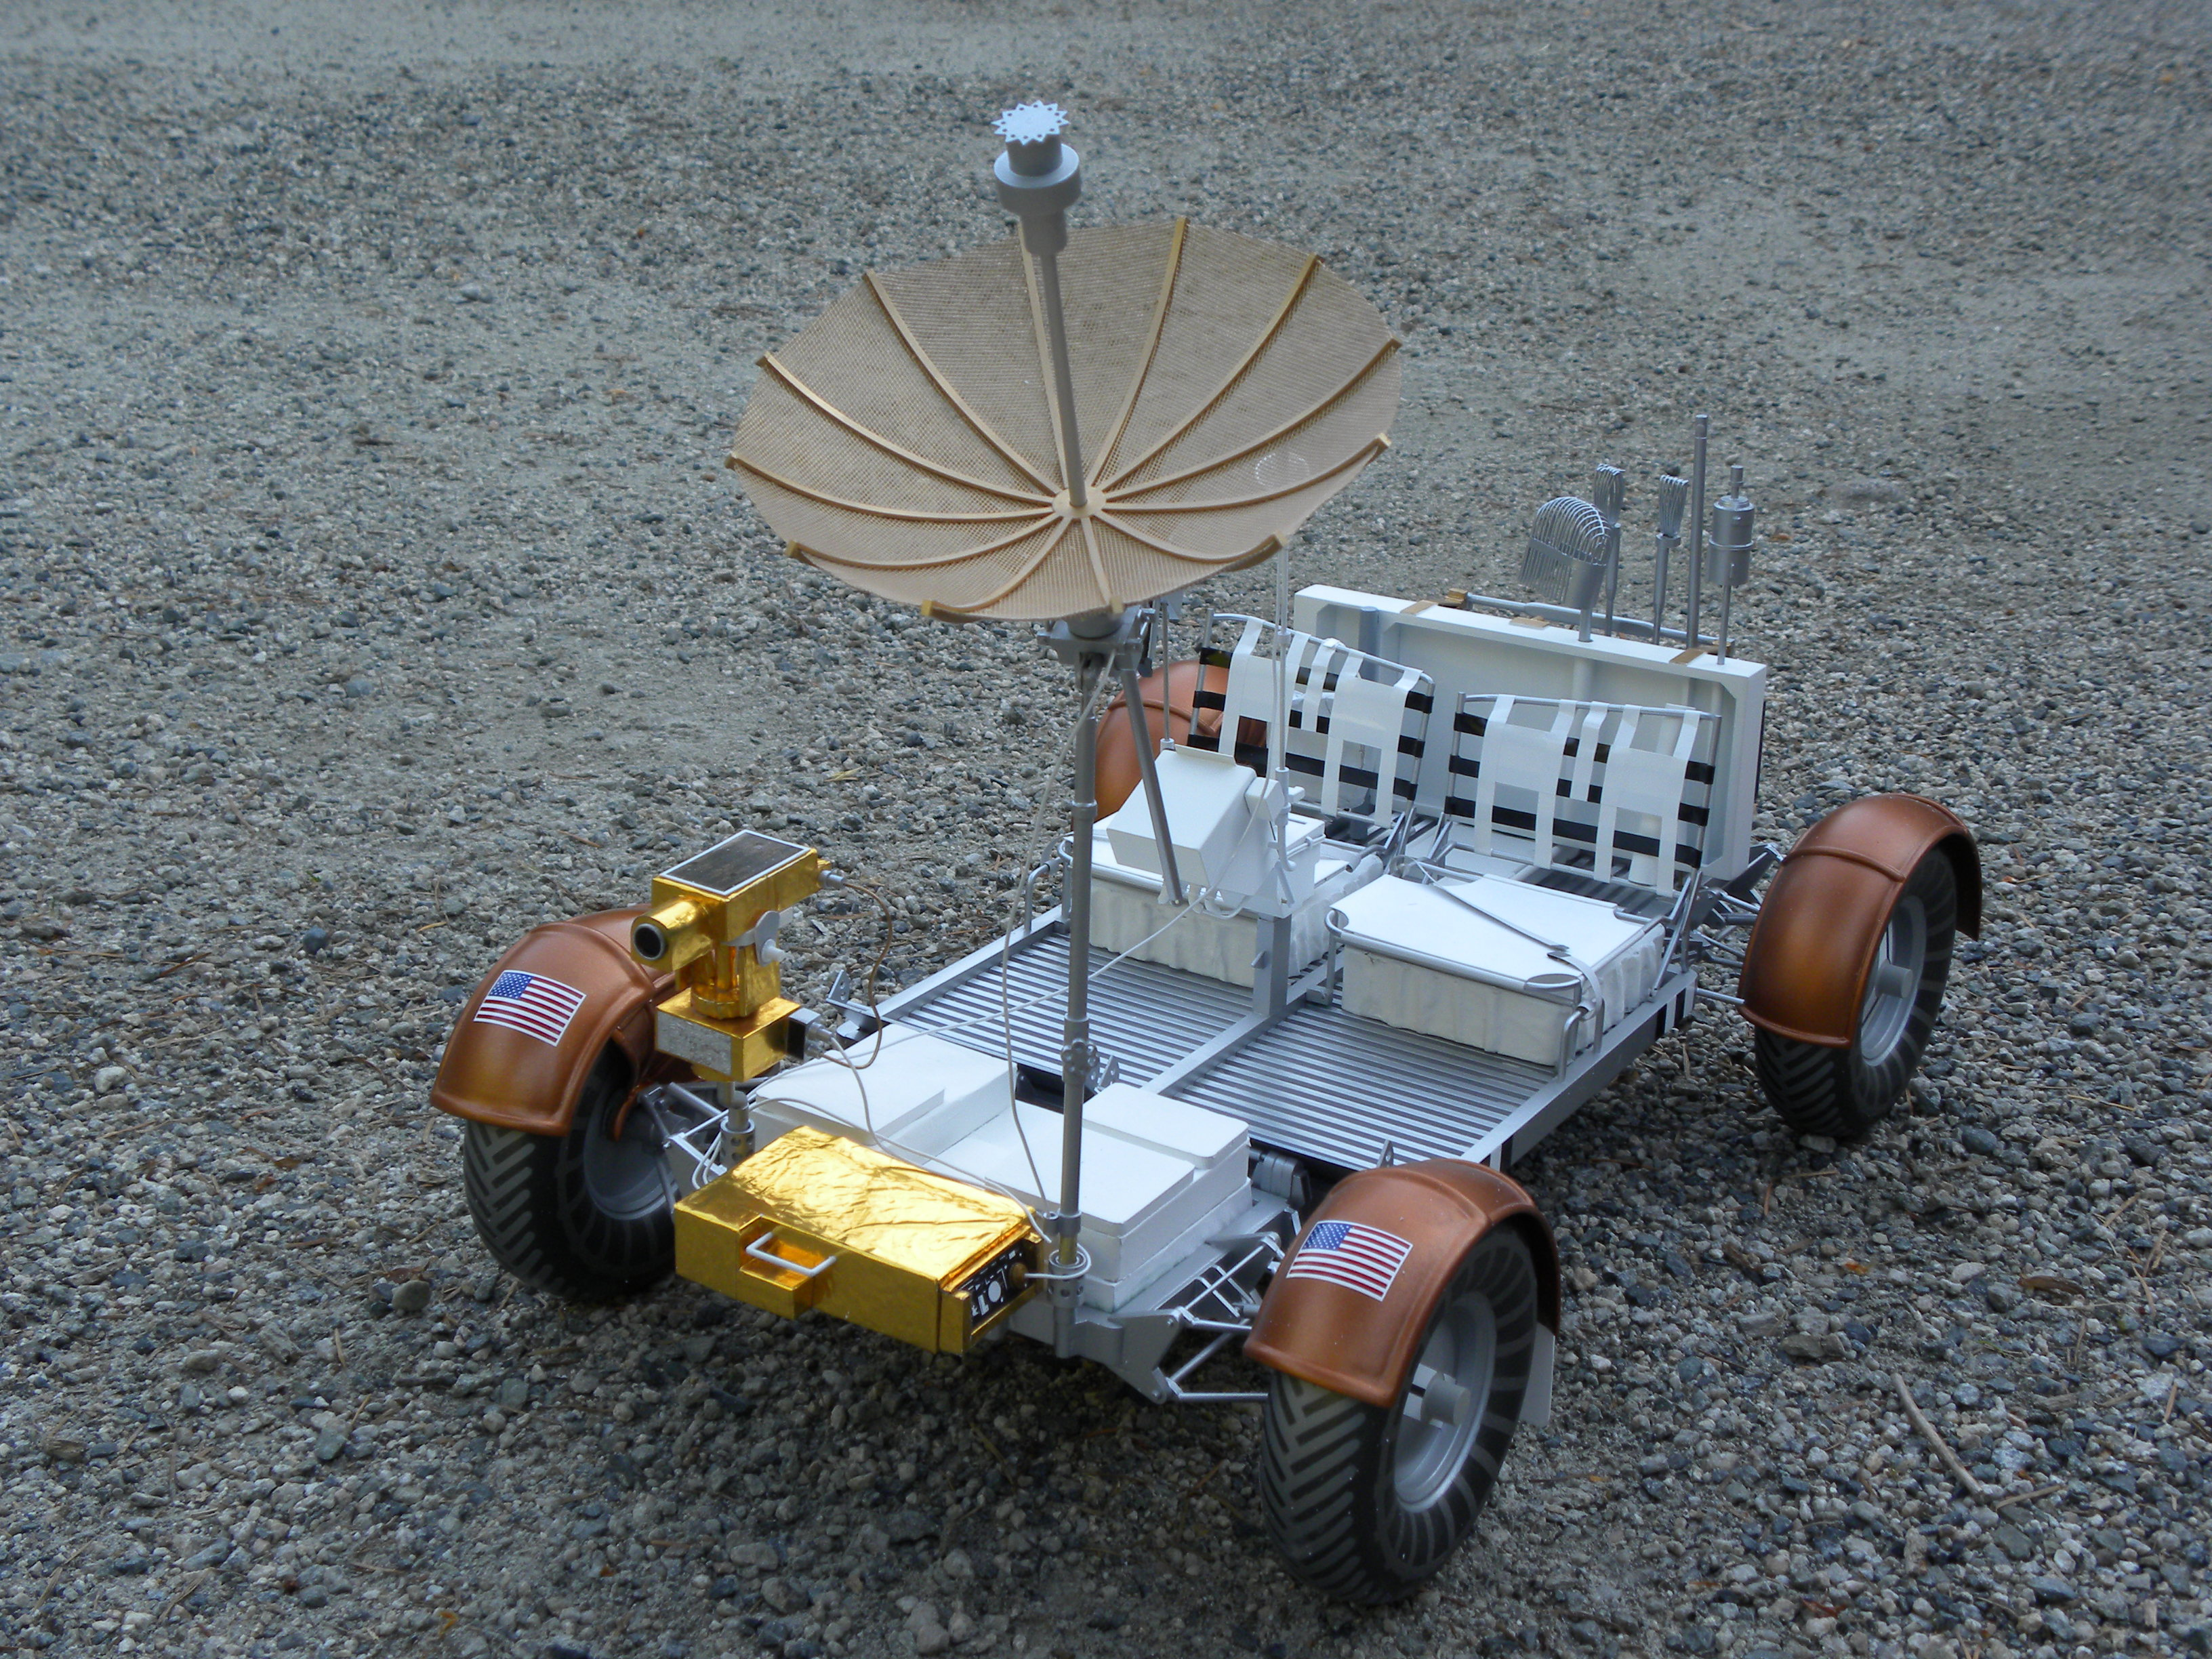 Lunar Rover Vehicle